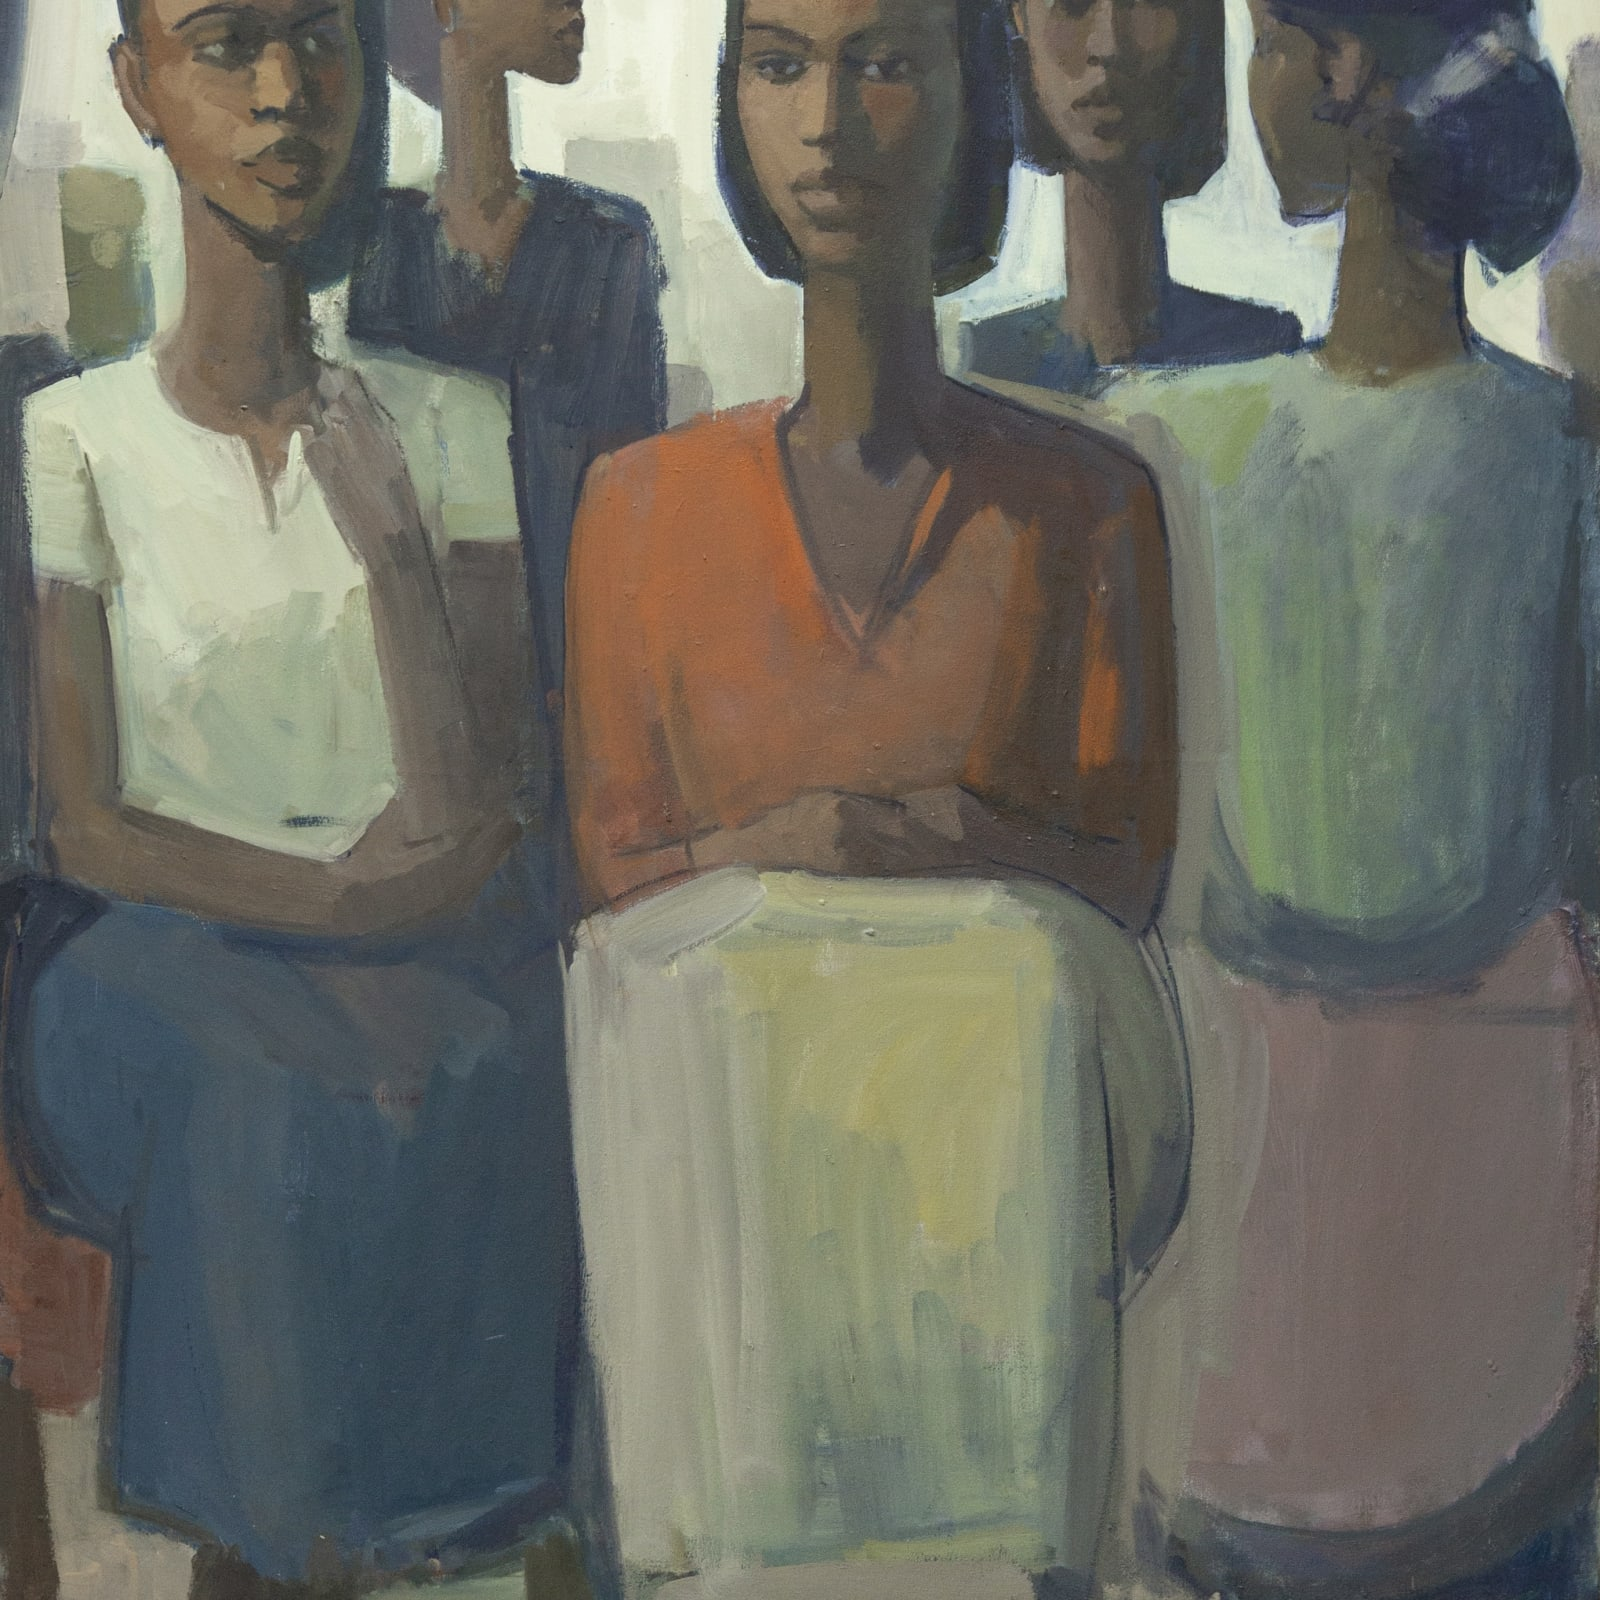 Tadesse Mesfin Pillars of Life: My Sister's Keeper, 2019